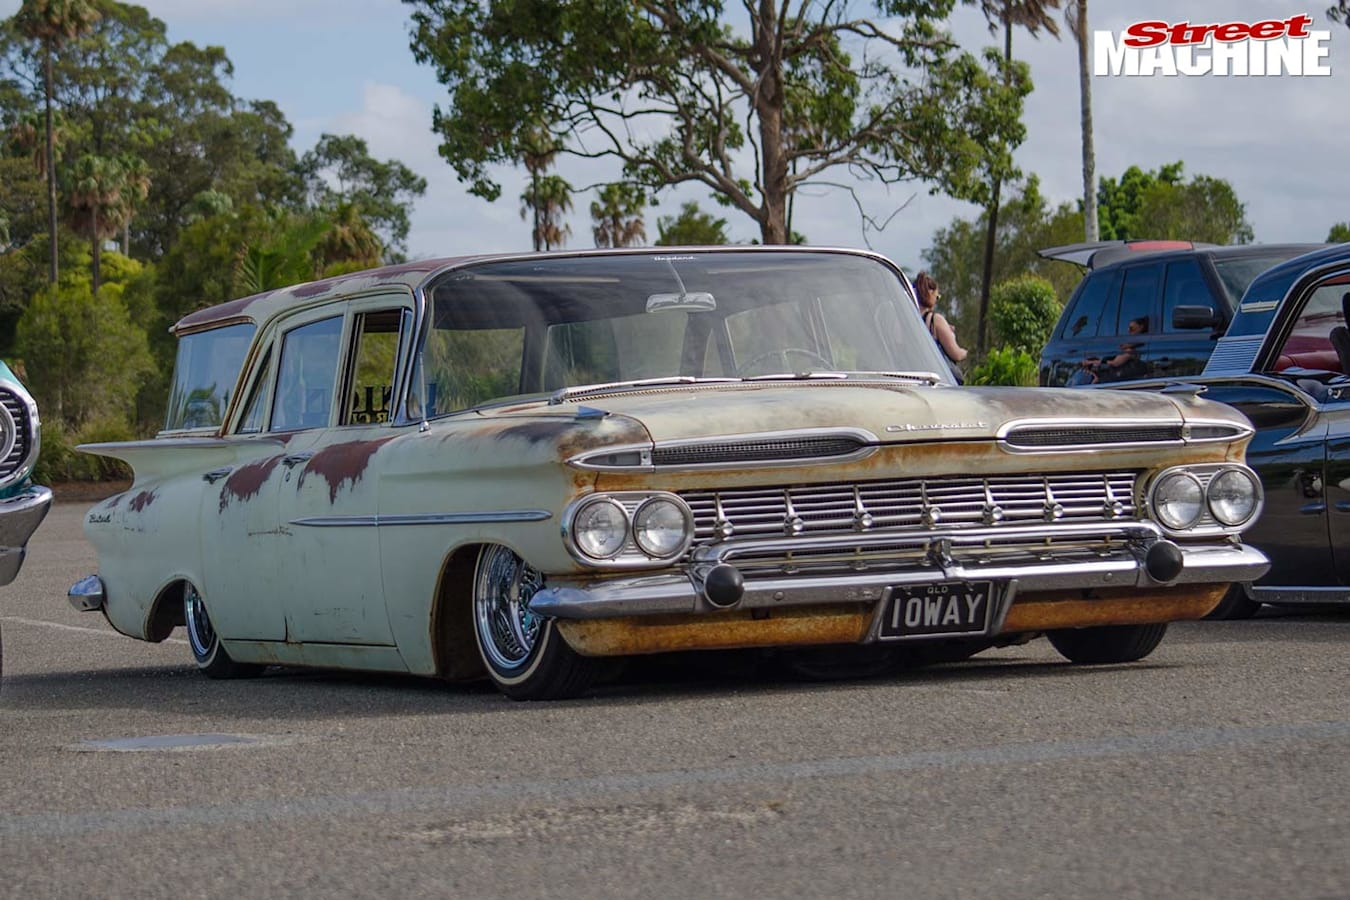 1959 Chevrolet wagon project